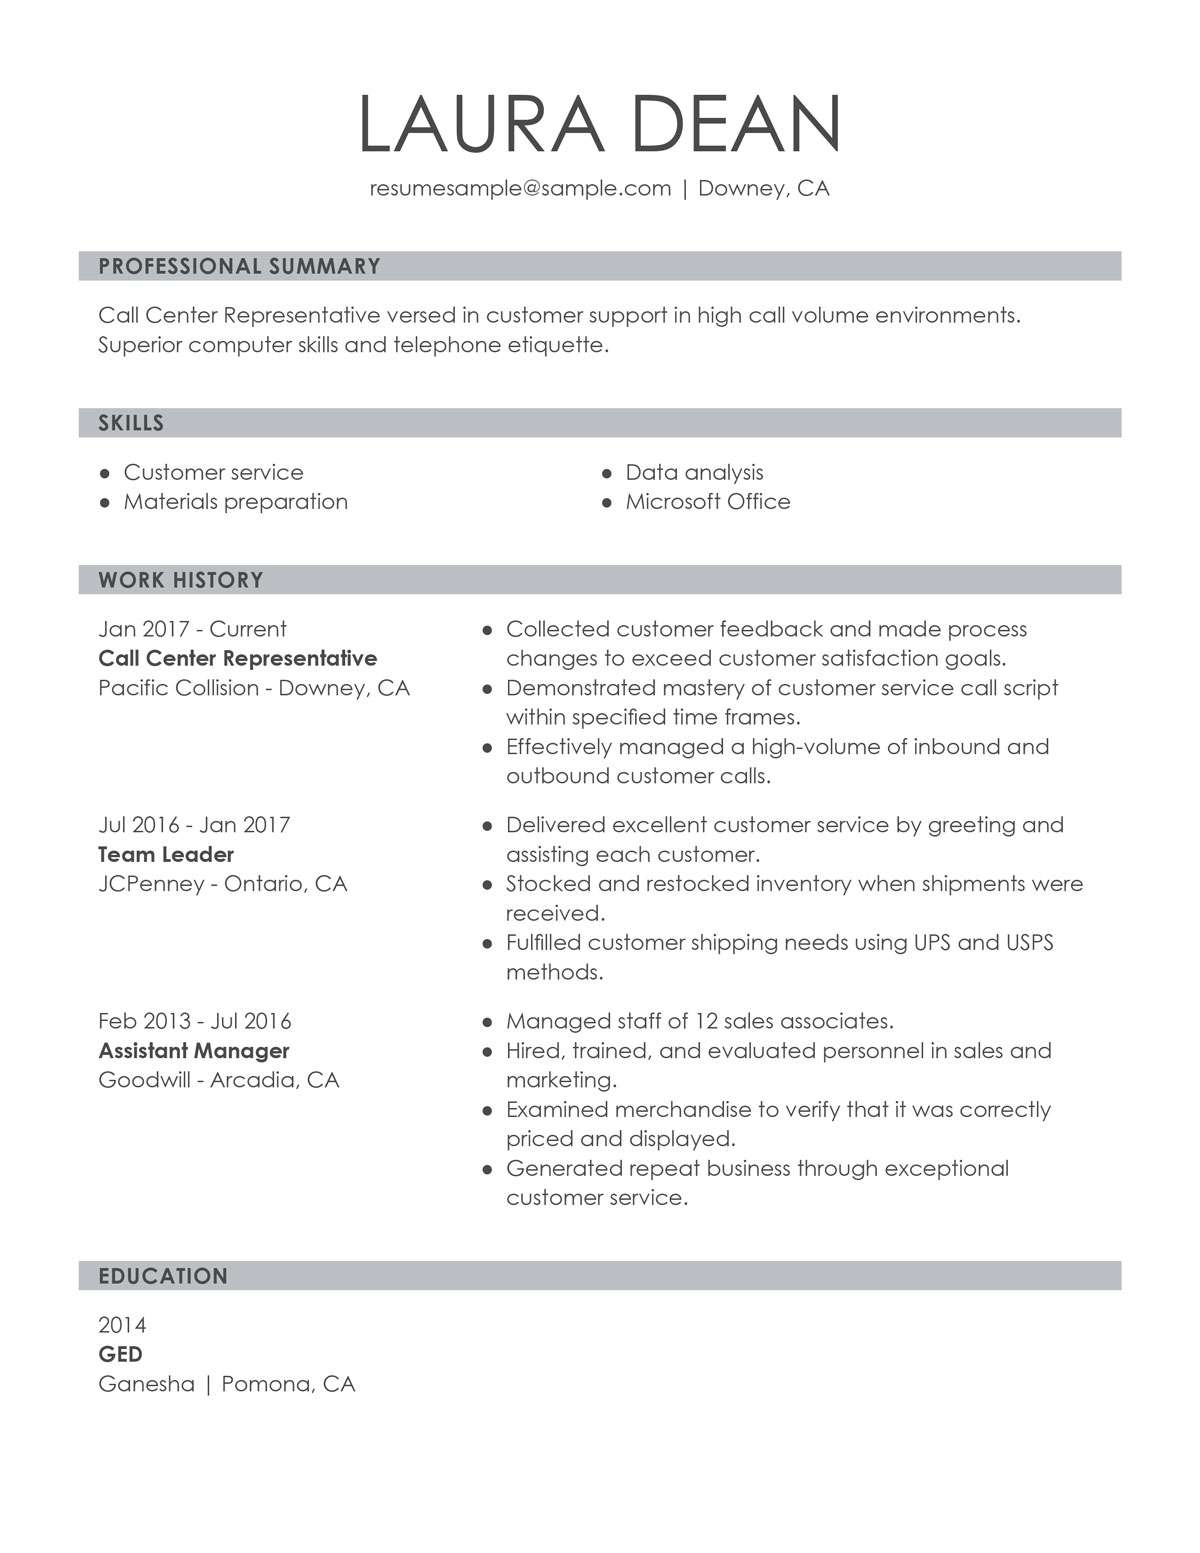 customize our customer representative resume example service overview call center sample Resume Customer Service Resume Overview